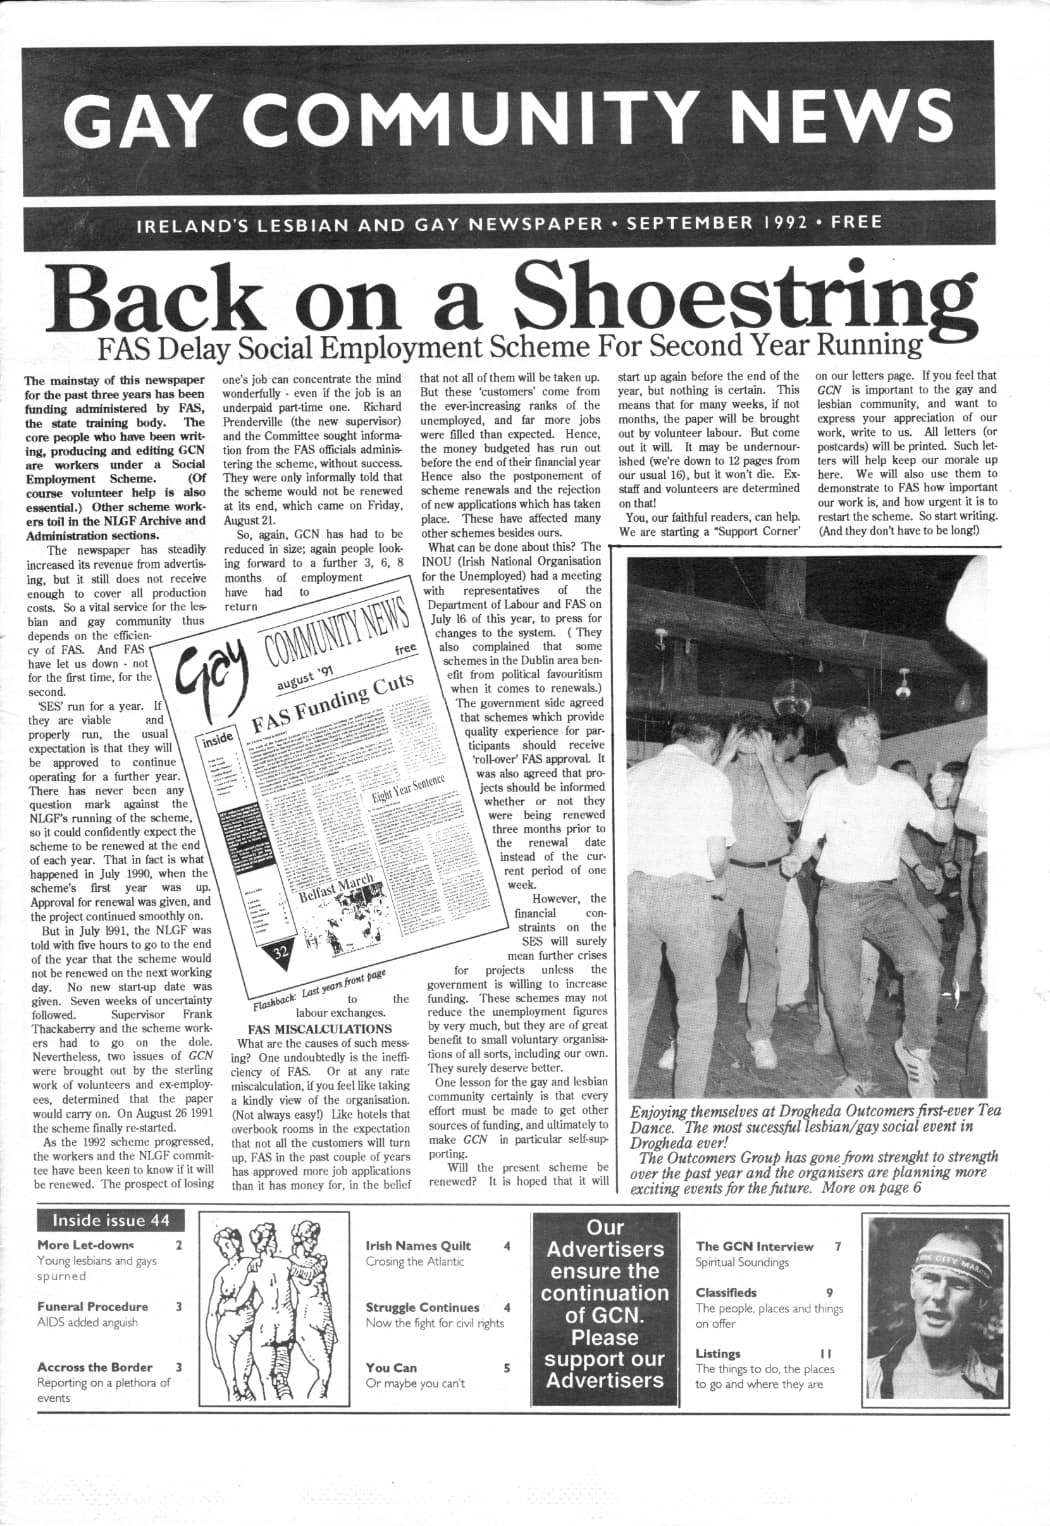 """Taking a look at the production process of GCN: Front page of Gay Community News from September 1992. The main headline reads """"Back on a shoestring""""."""